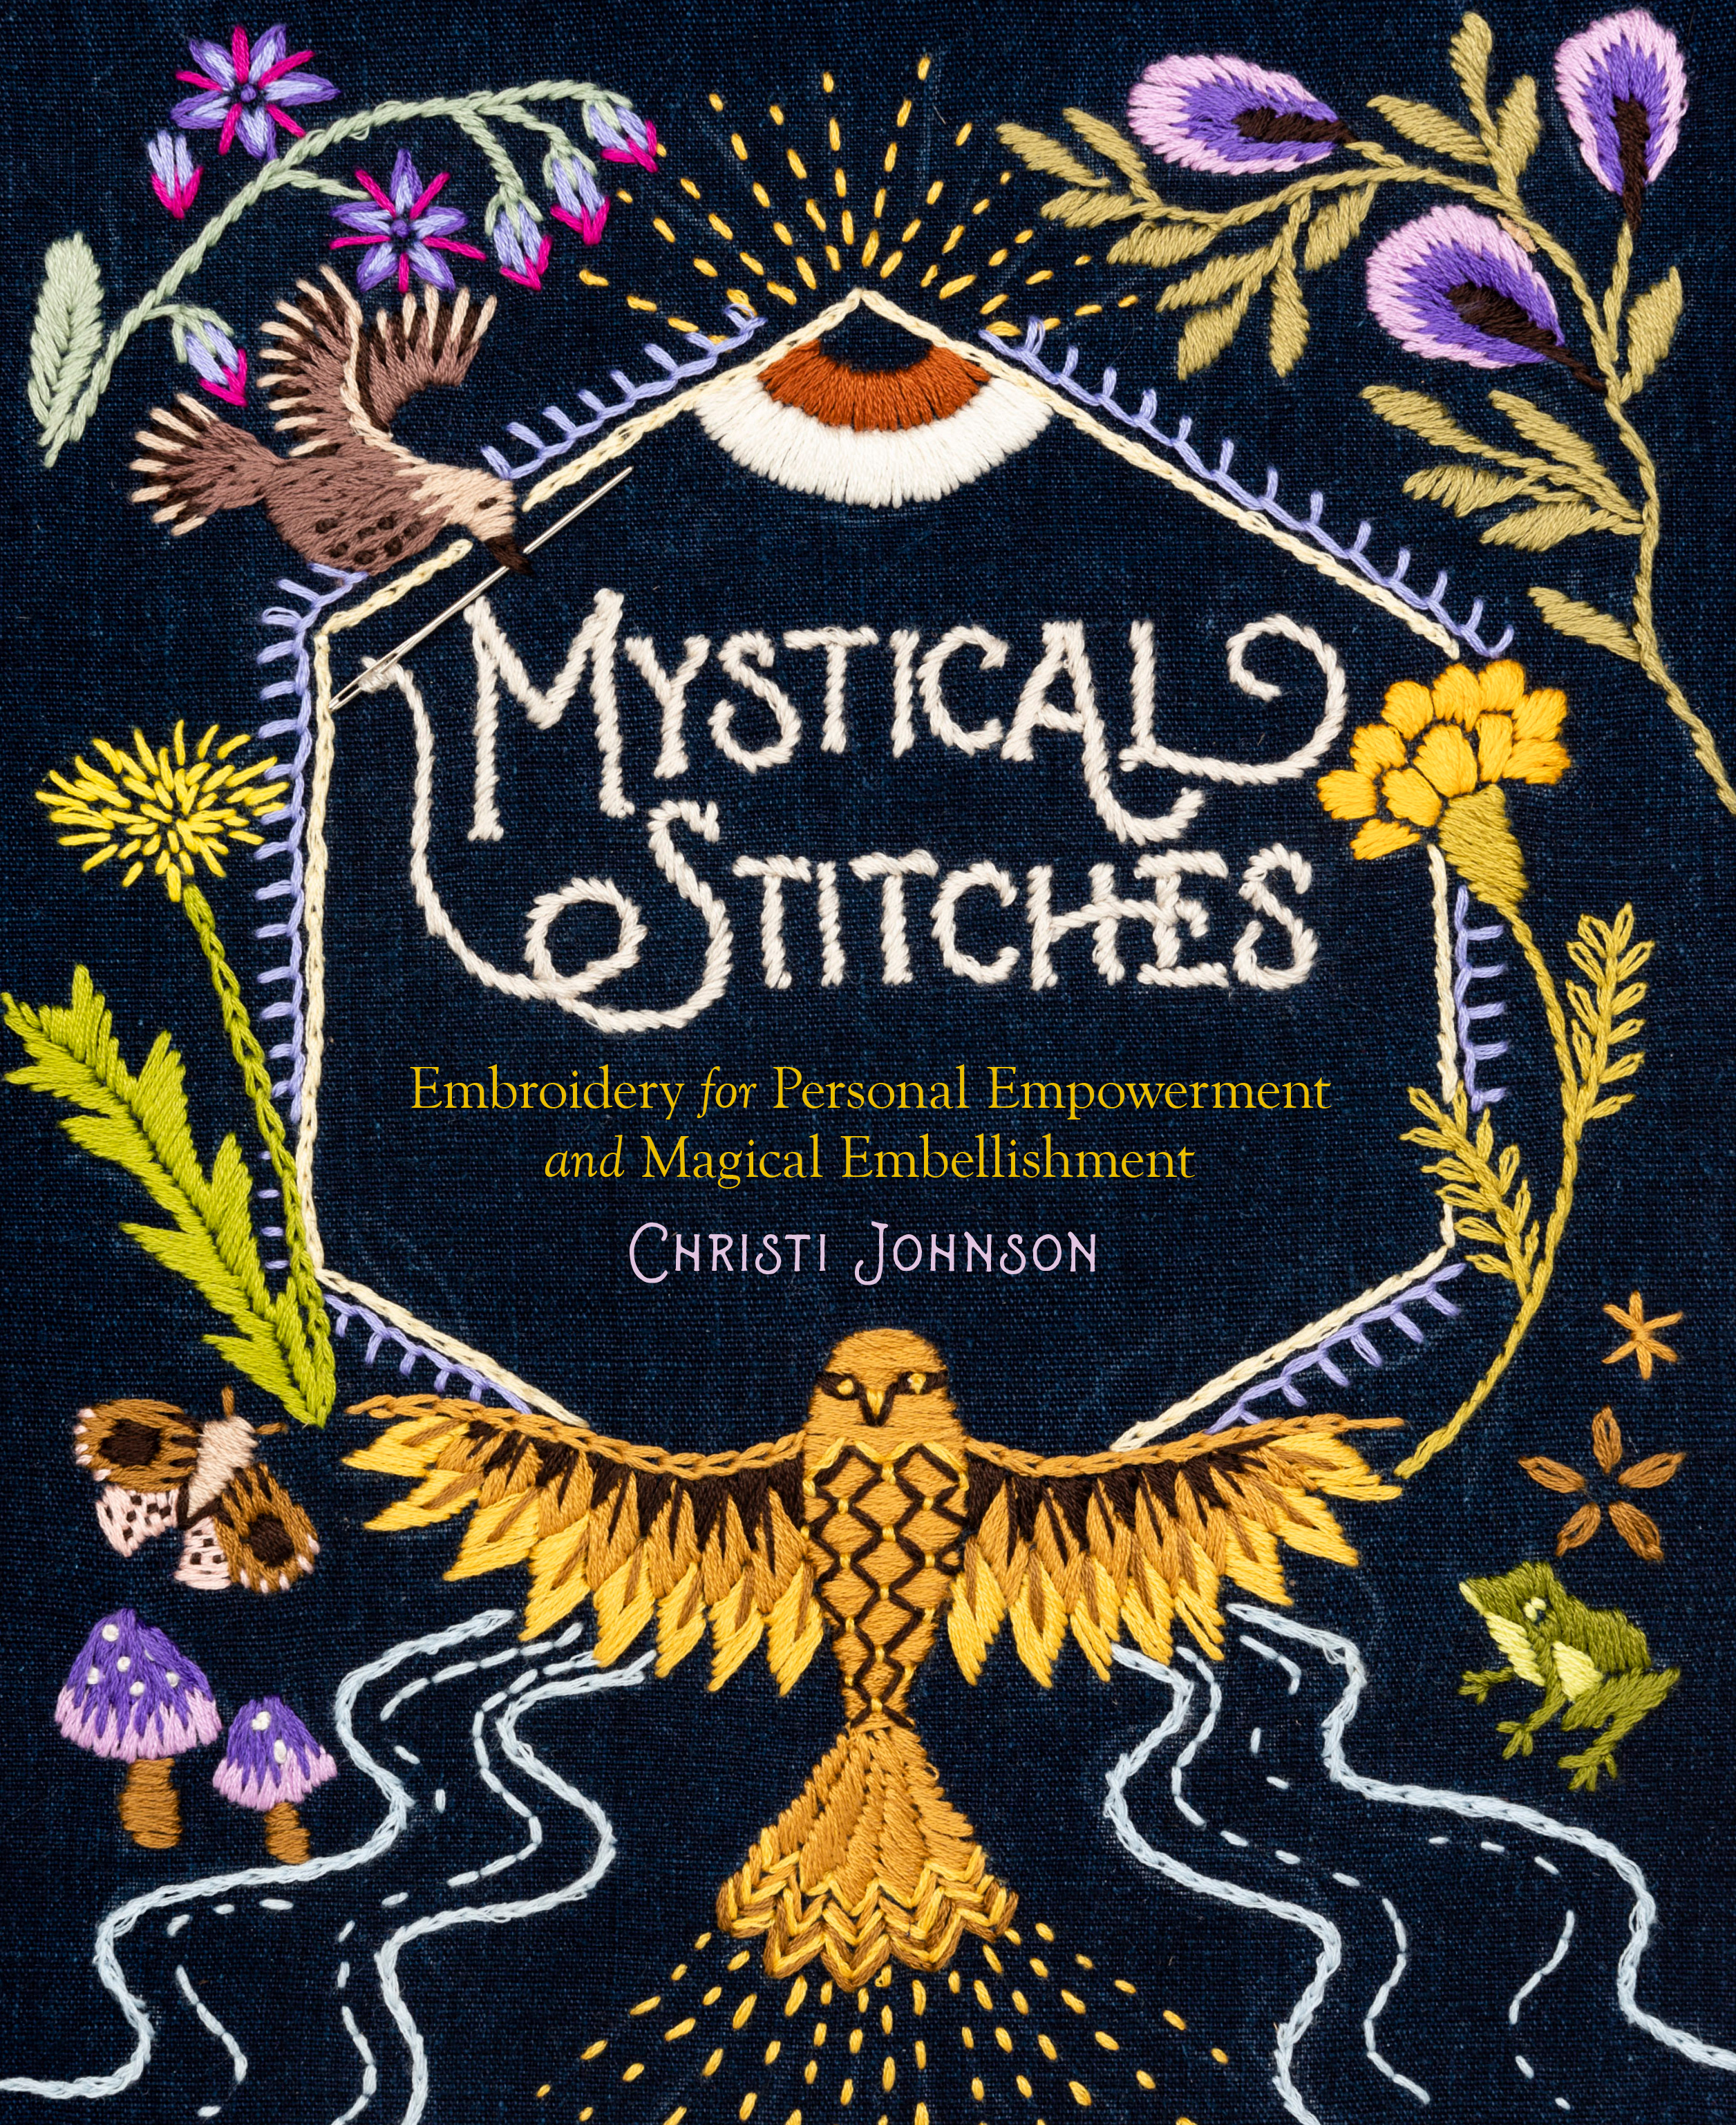 Mystical Stitches Embroidery for Personal Empowerment and Magical Embellishment - Christi Johnson